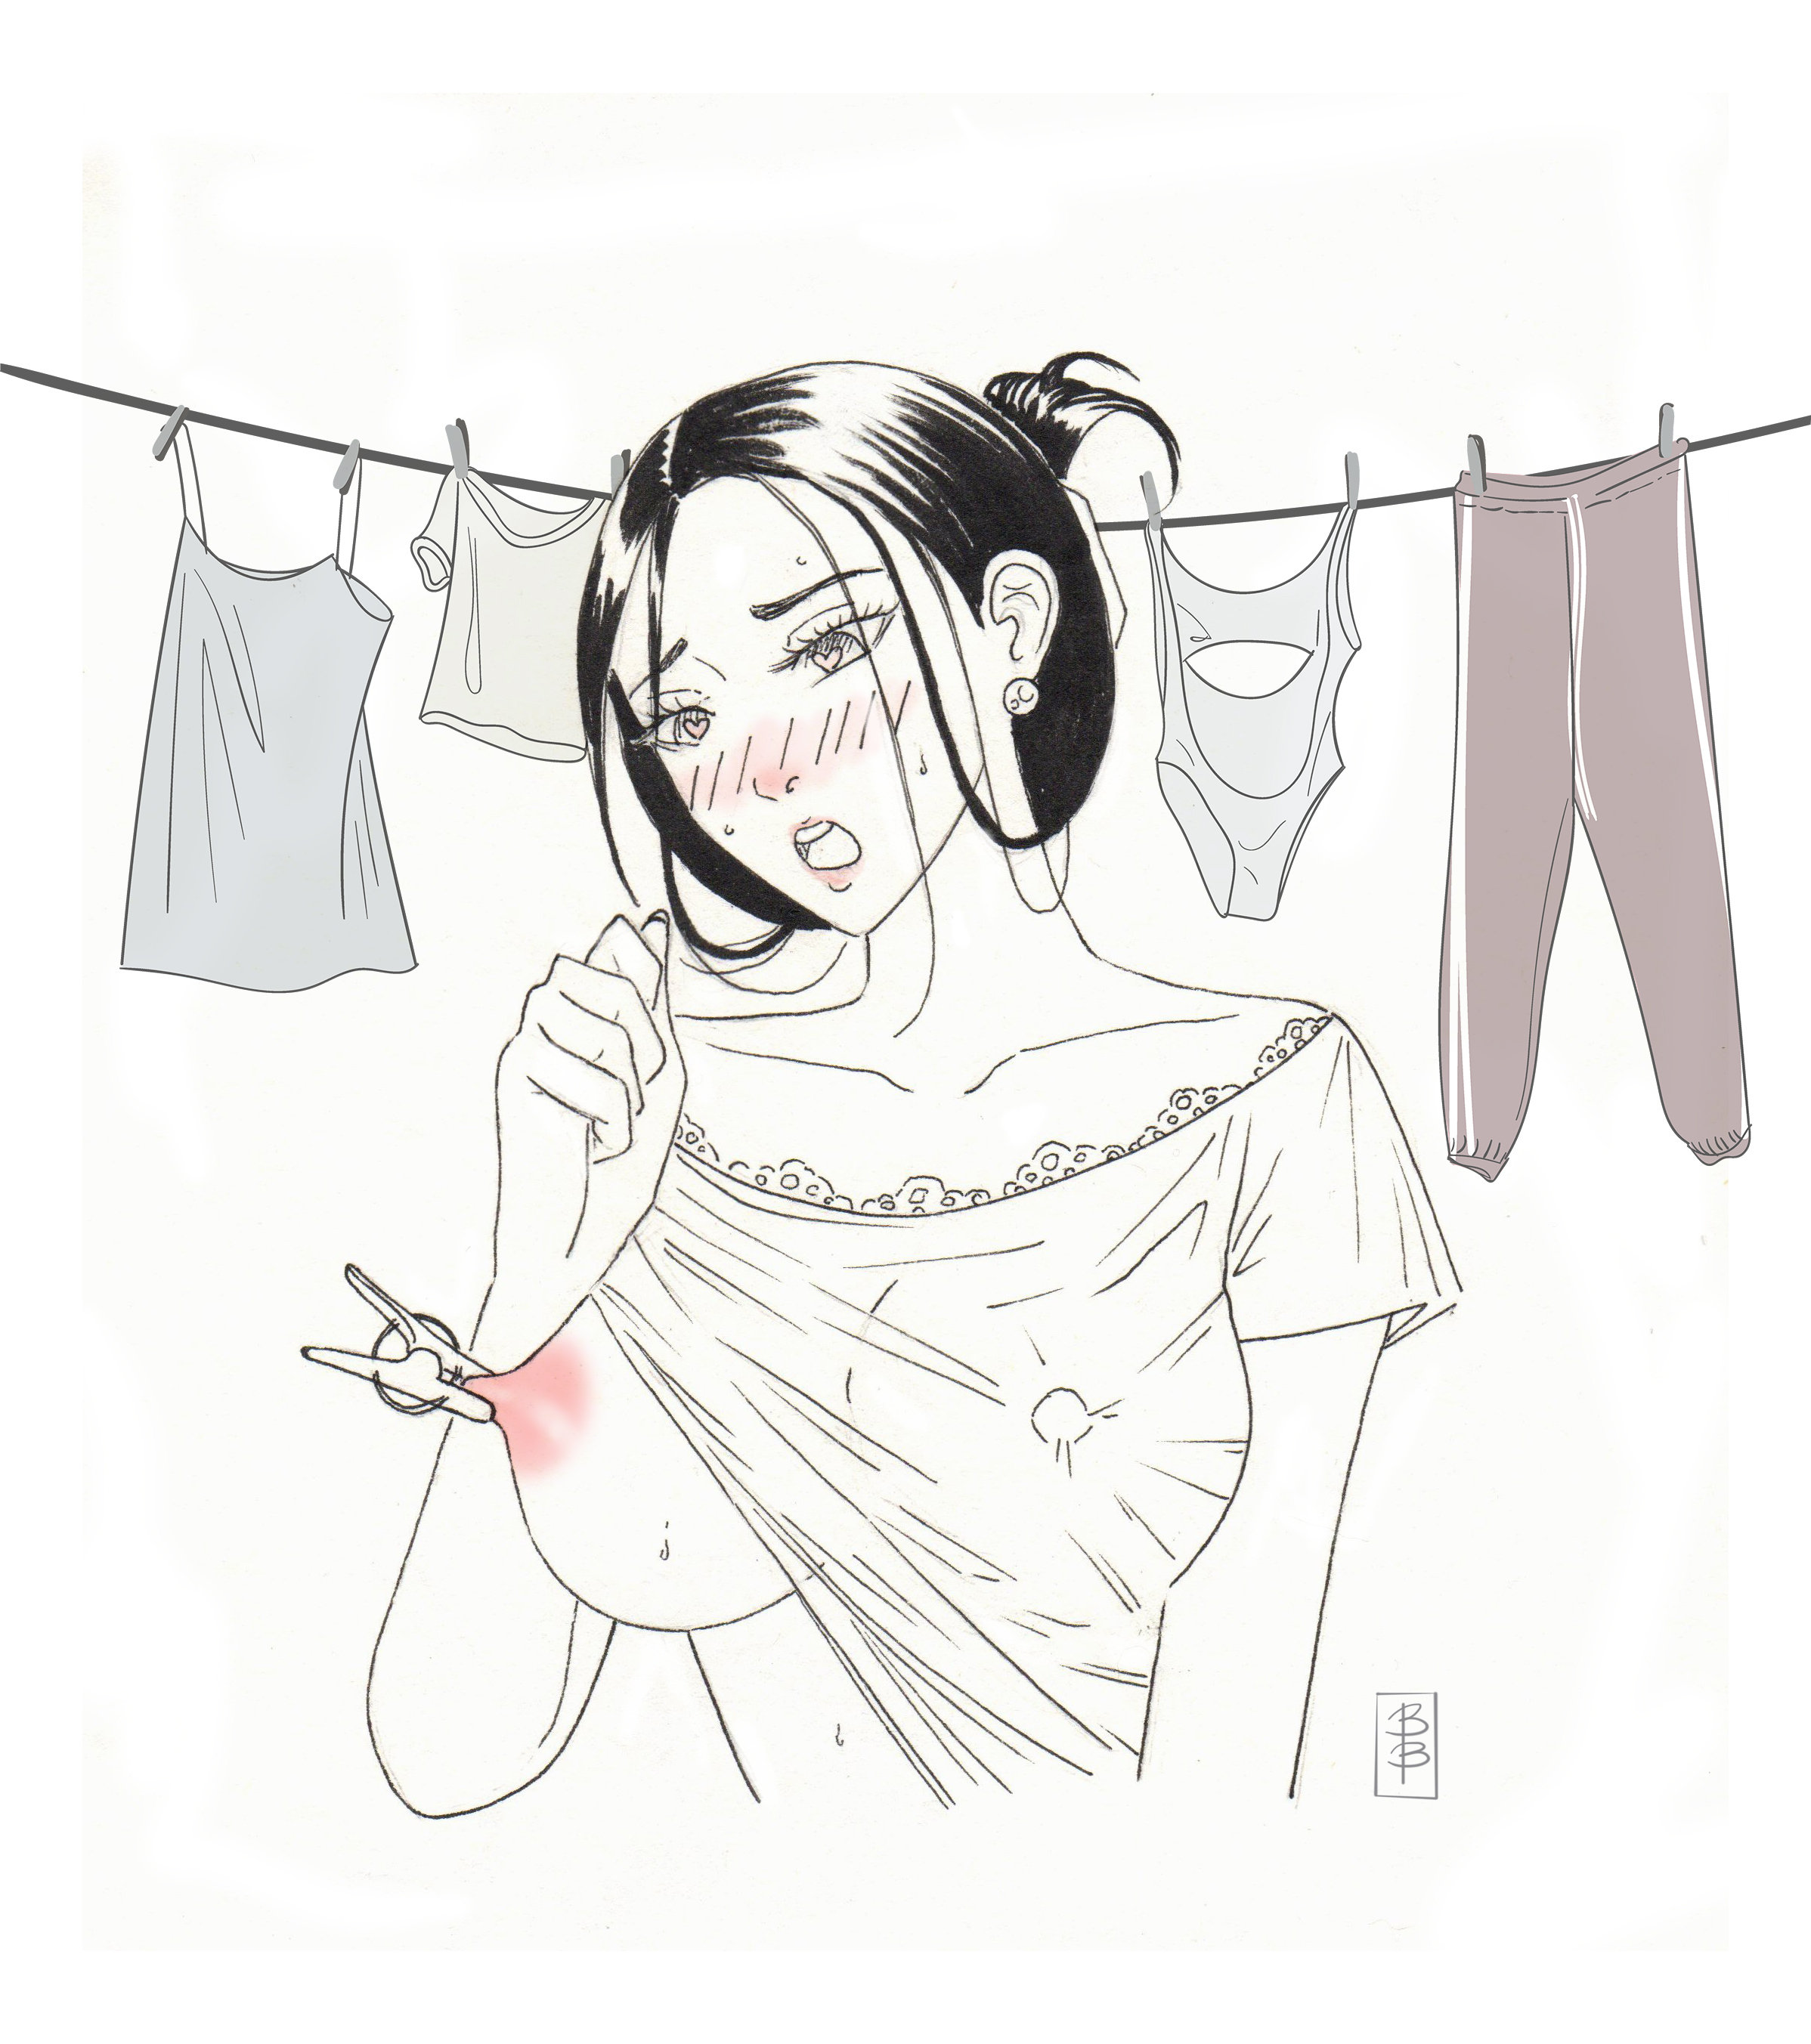 Coni Hanging Out the Laundry